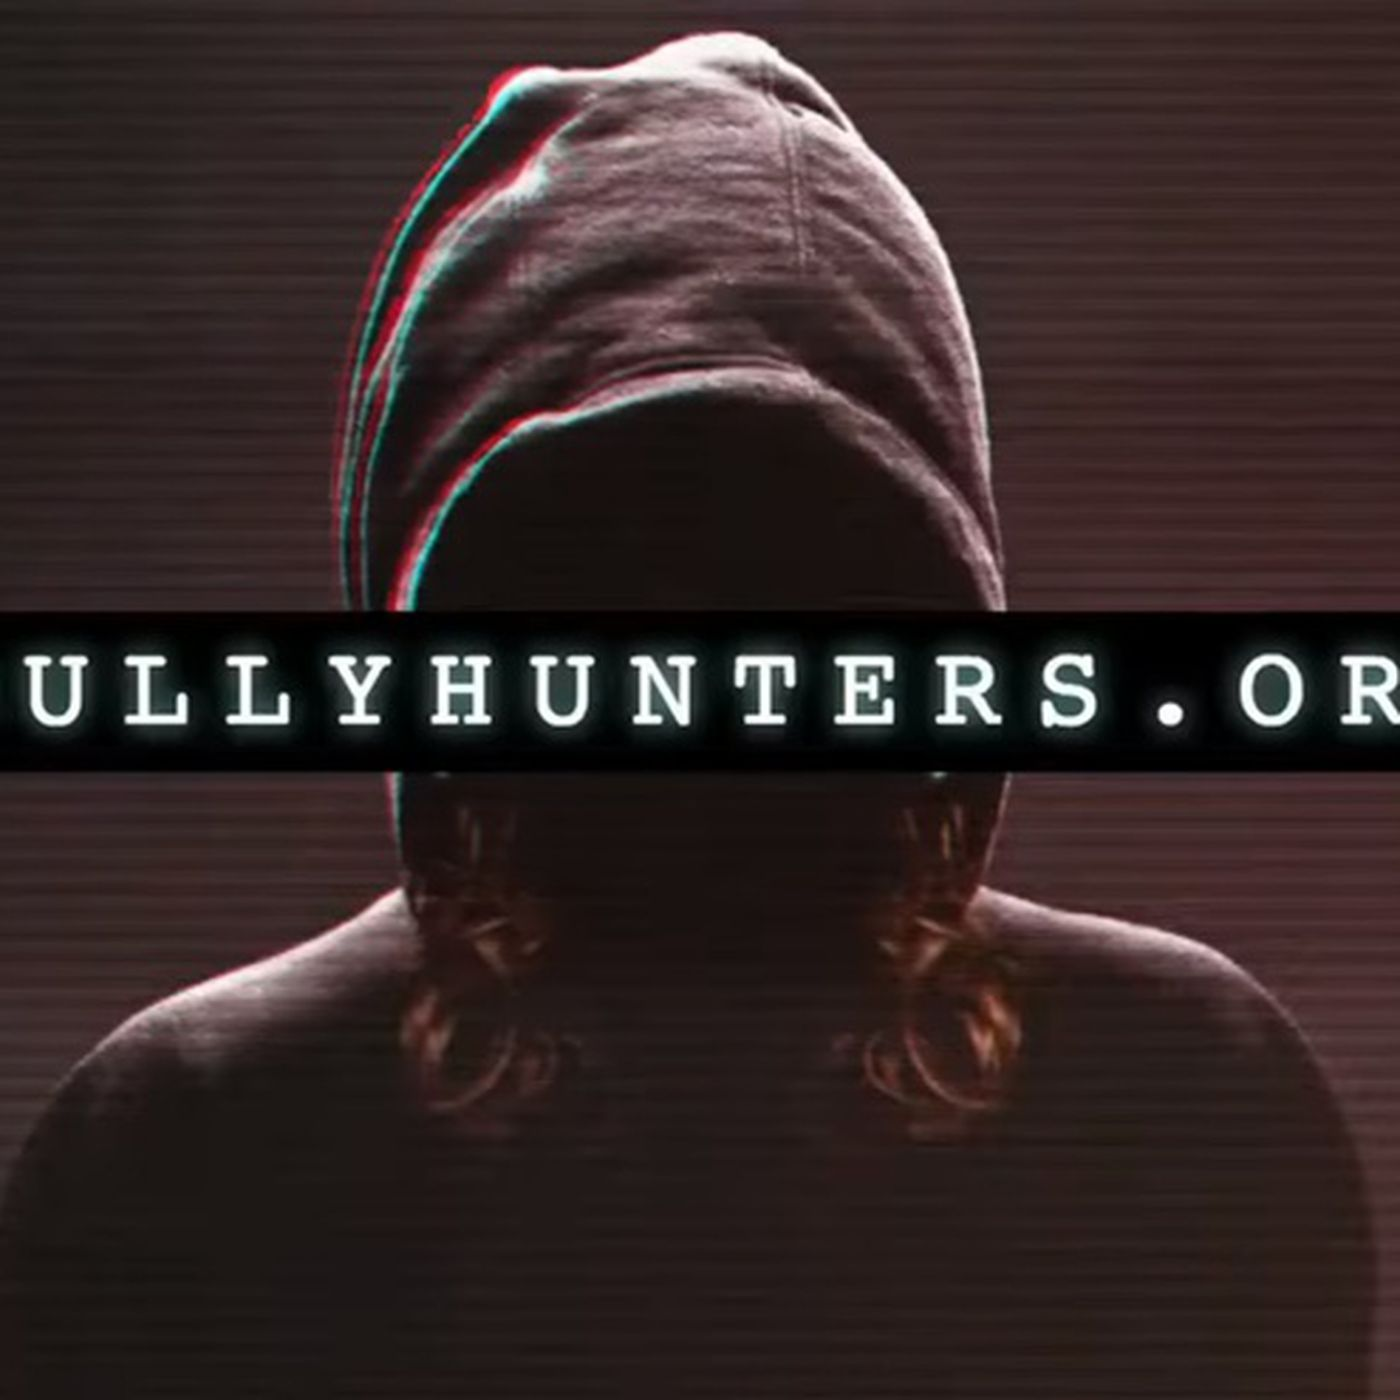 Bully Hunters organizers shut down campaign after disastrous first